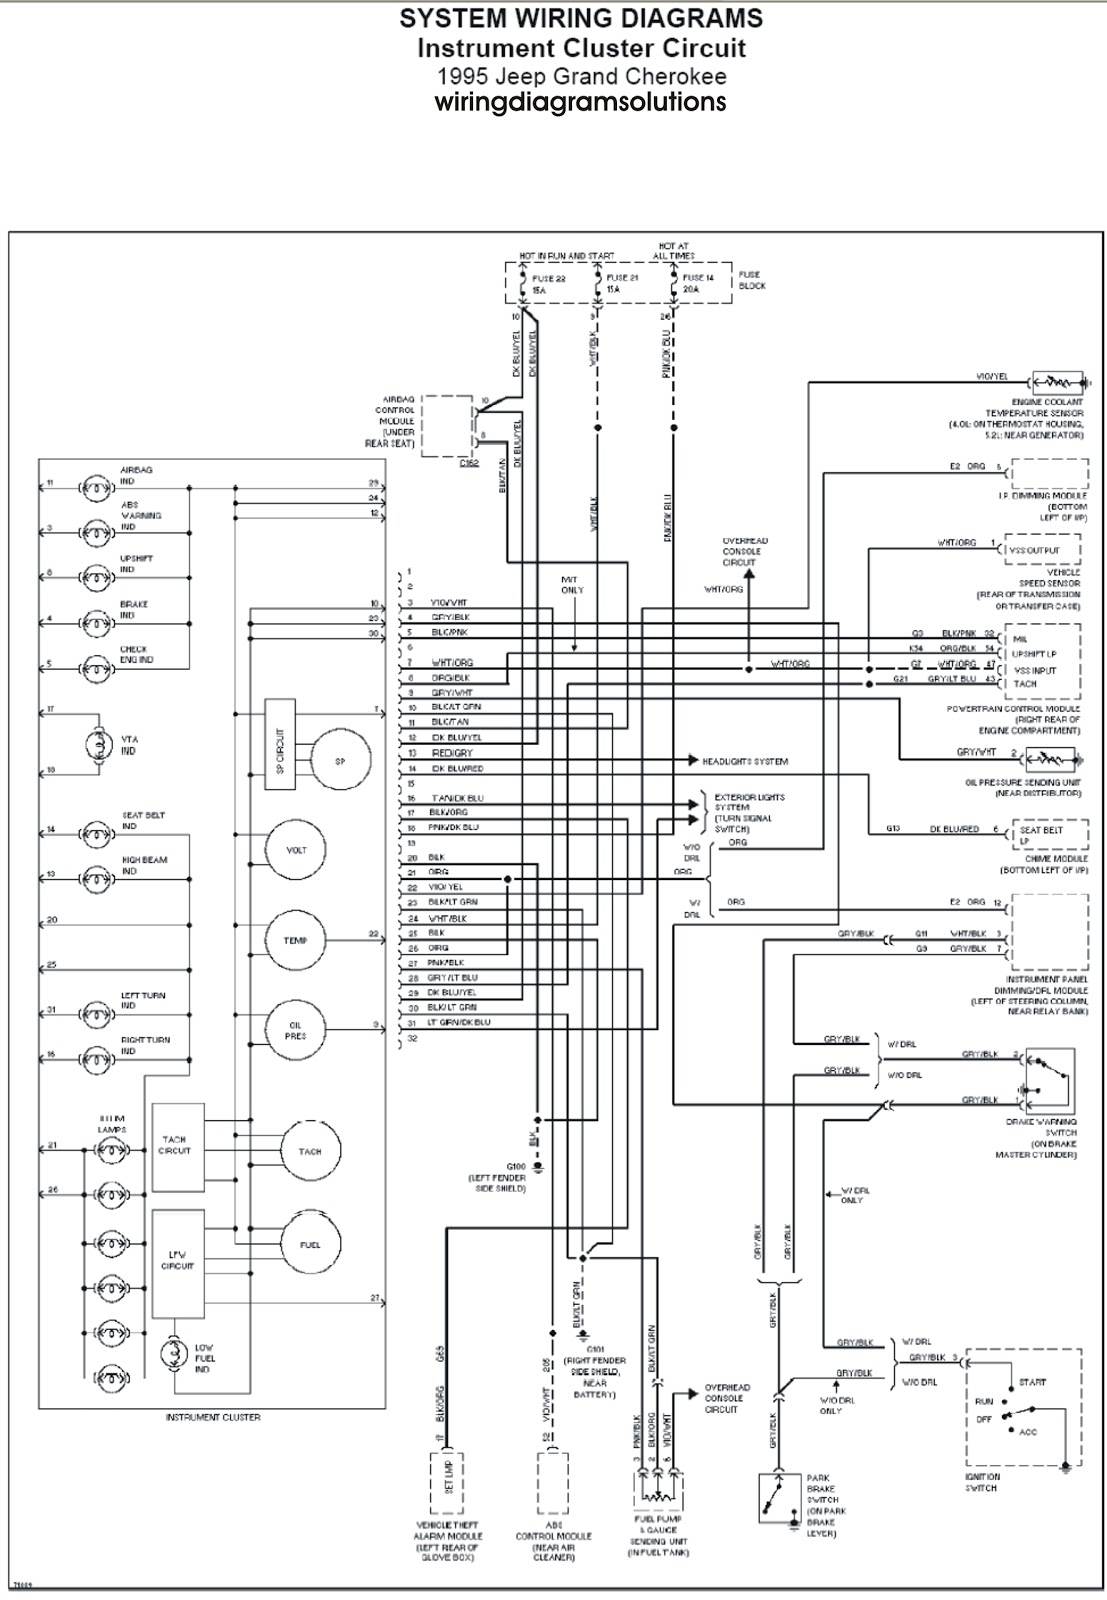 Strange Porsche 914 Electrical Relay Wiring Diagram In Addition Wiring Wiring Cloud Rdonaheevemohammedshrineorg